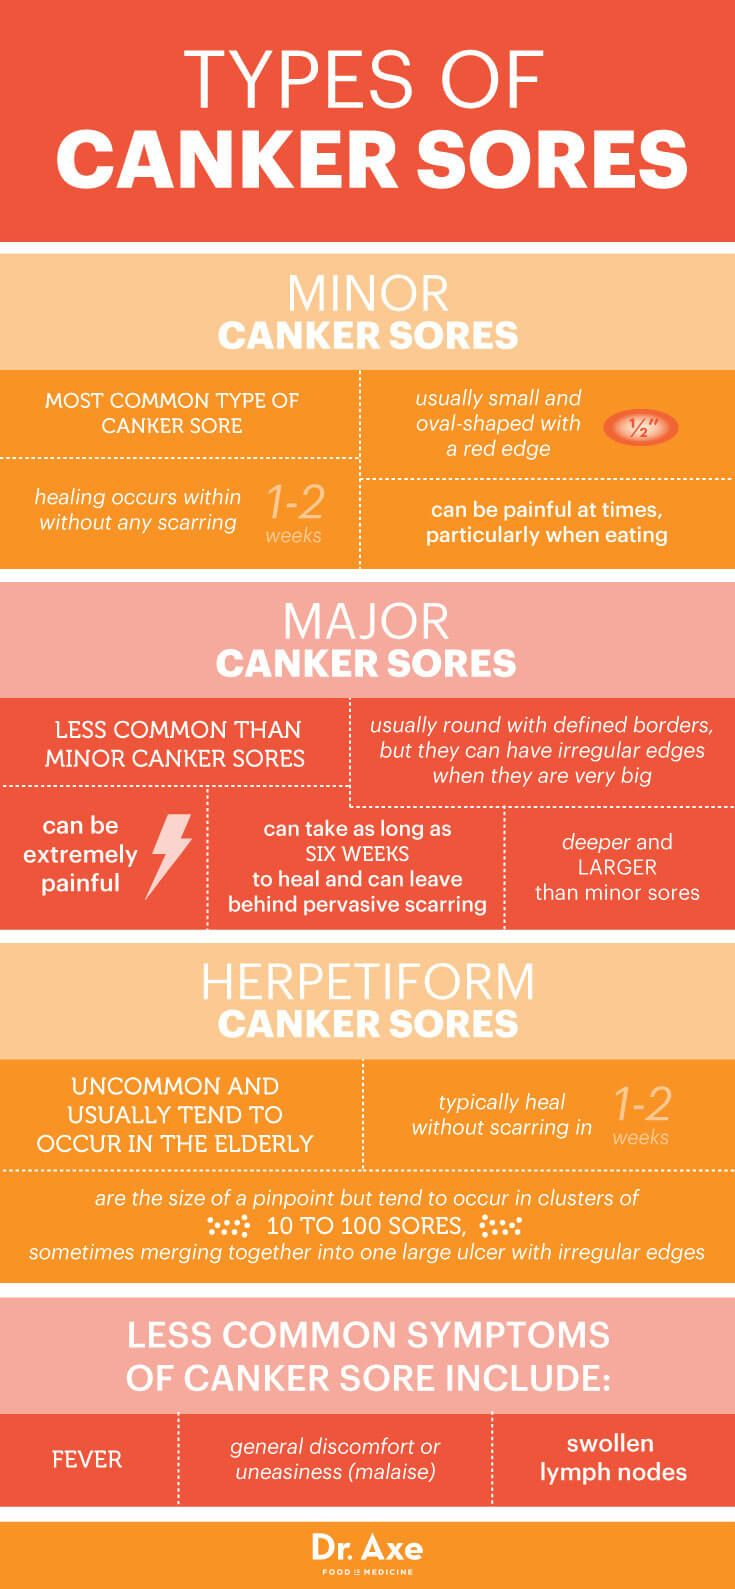 Types of canker sores - Dr. Axe